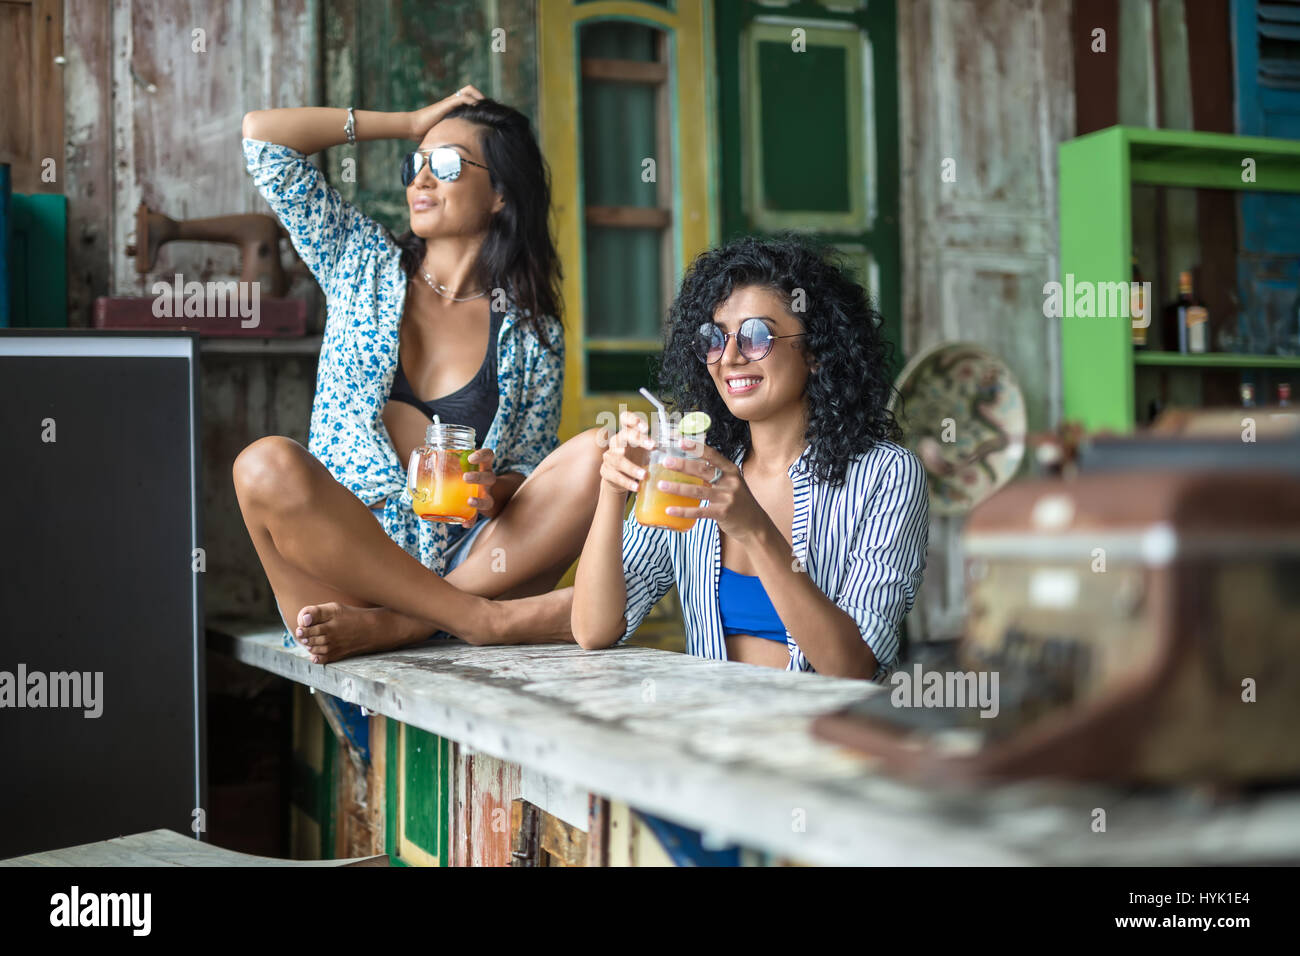 Asian girls in bar - Stock Image